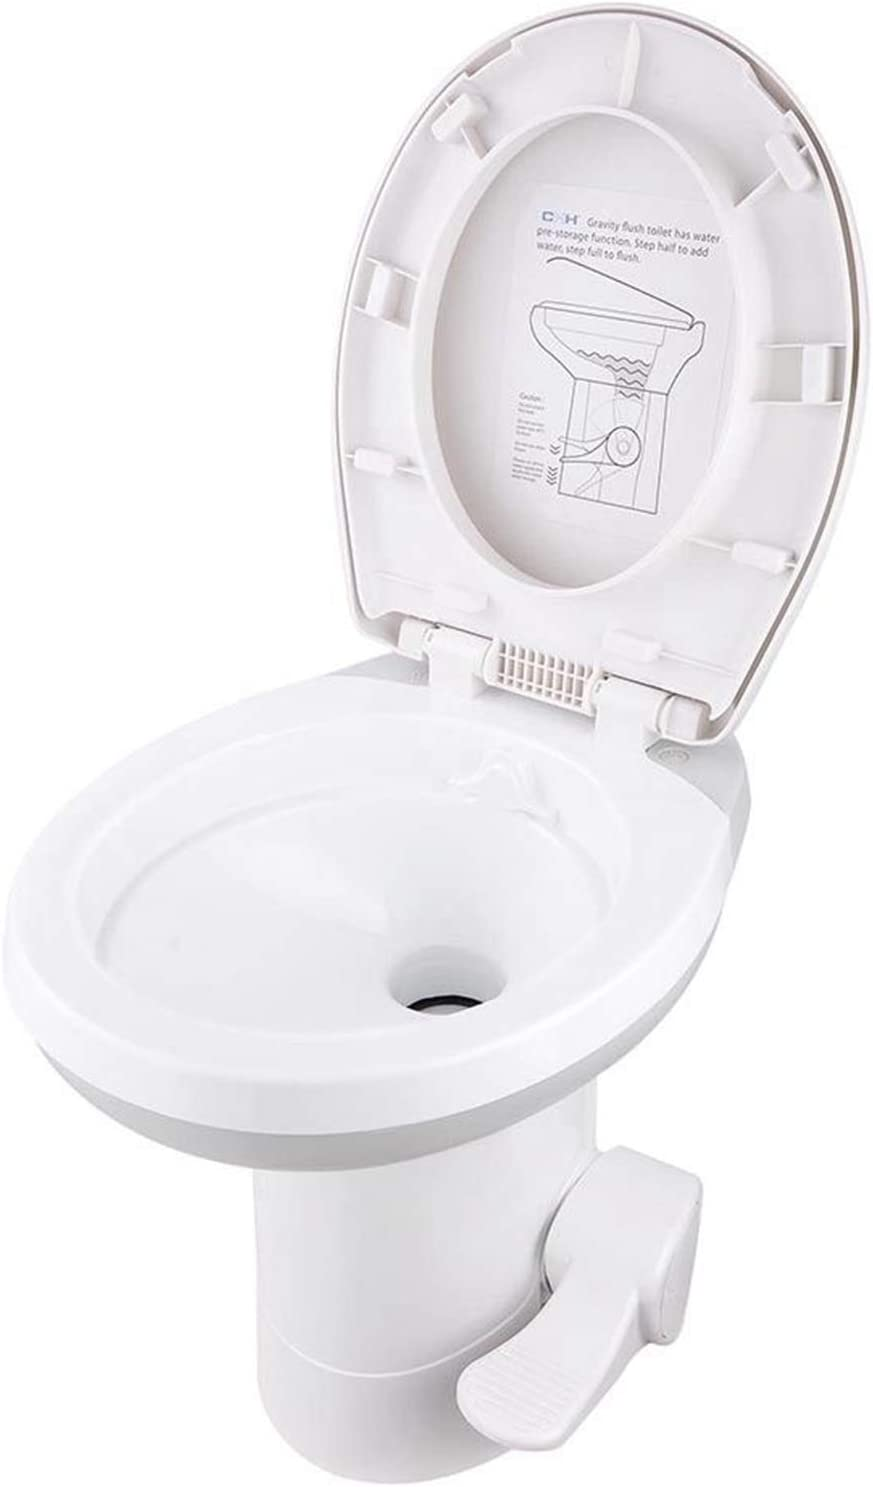 OTU Flushing Toilet Outdoor Toile Camping Potty Chicago Mall Durable Inventory cleanup selling sale